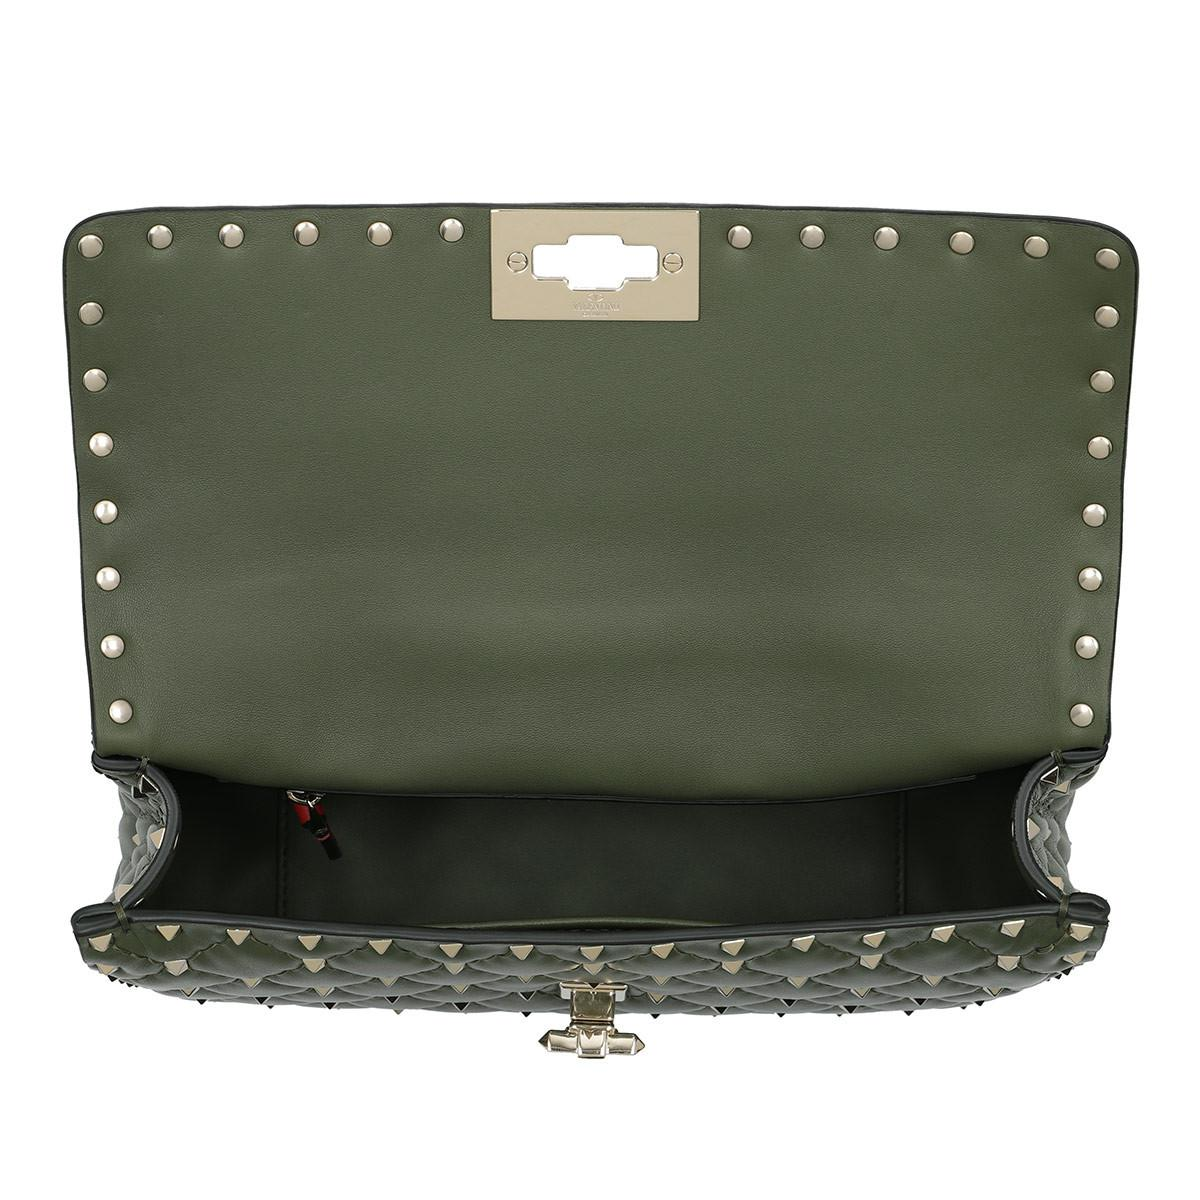 Rockstud Saddle Bag in Oasis Khaki Calfskin Valentino Cheap Sale Big Discount Largest Supplier Cheap Price Best Prices For Sale Discount Cheapest Price Discount Enjoy R4Heev8